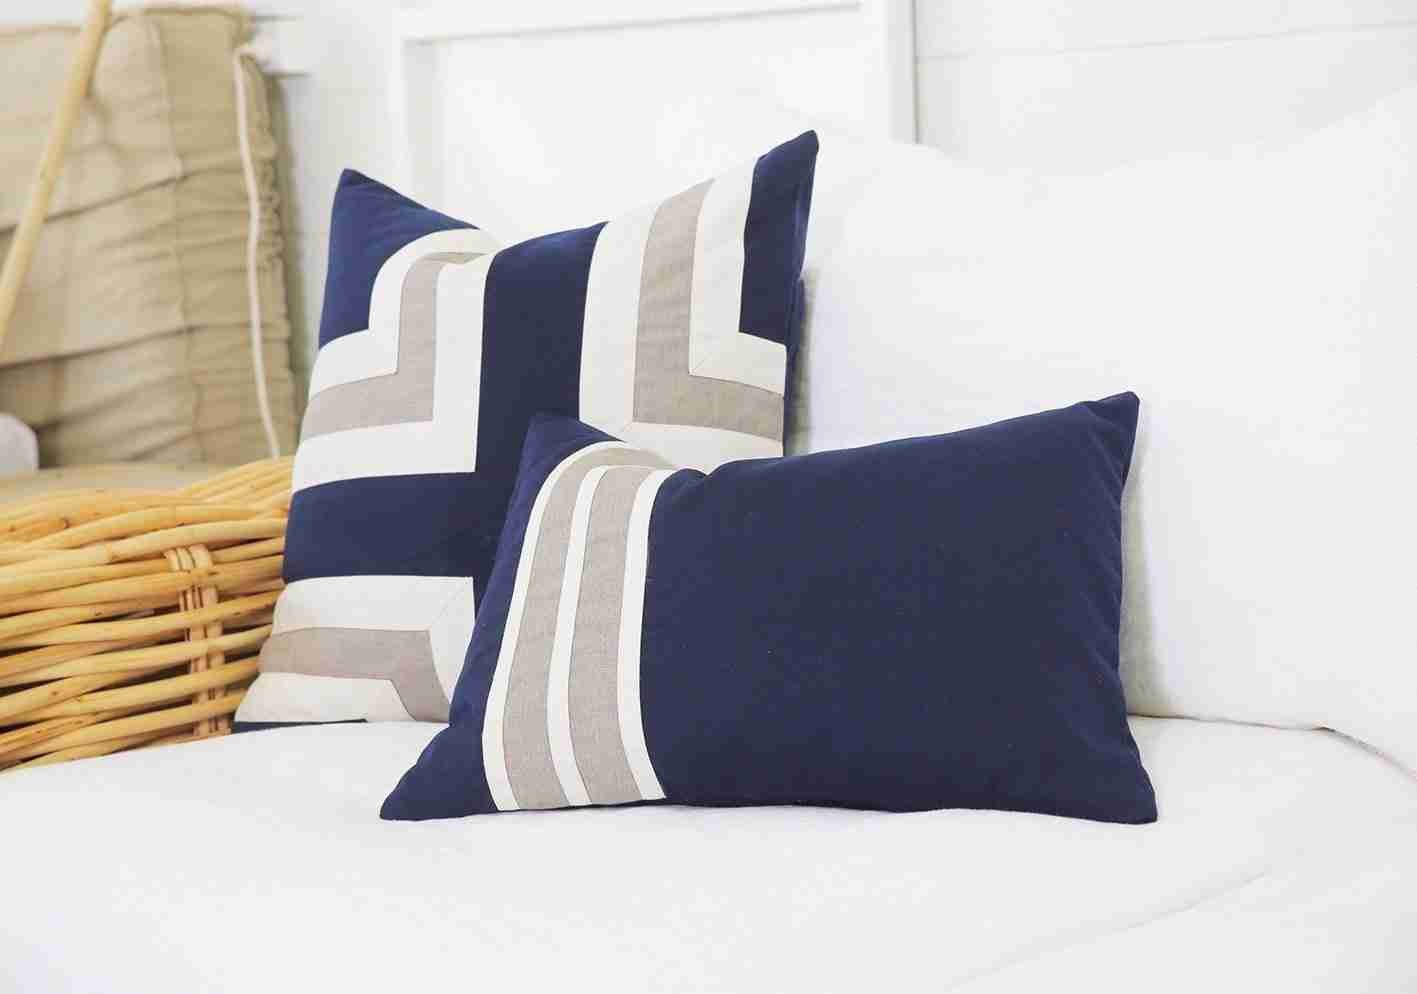 Bandhini Homewear Design Lounge Cushion Blue / 22 x 22 Outdoor Regent Cross Navy Lounge Cushion 55 x 55 cm